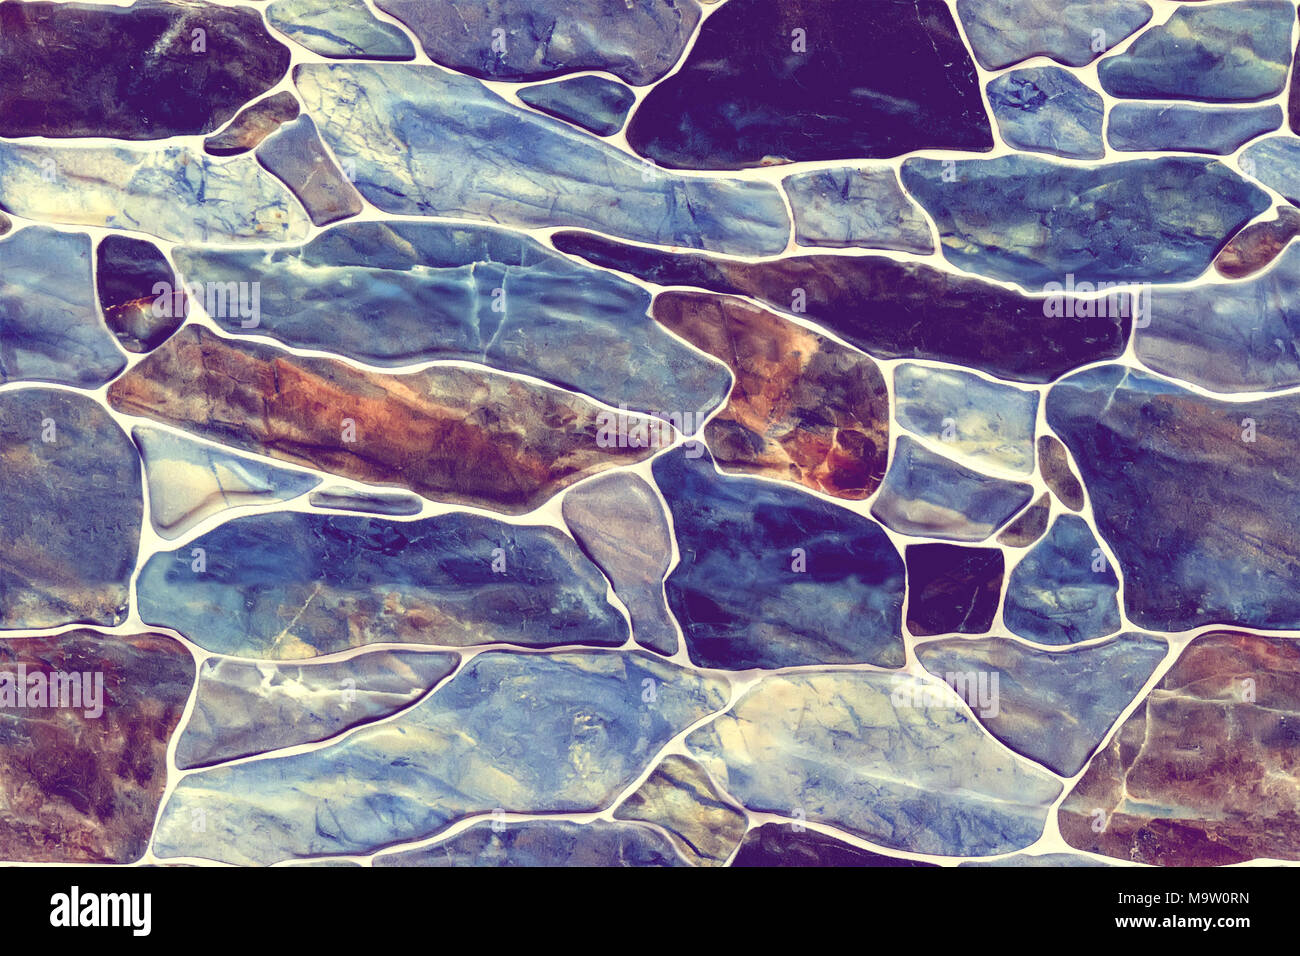 Stone wall rustic texture big seamless background. infinitely seamless texture of dark blue and brown marble stones for decoration of walls and fences - Stock Image